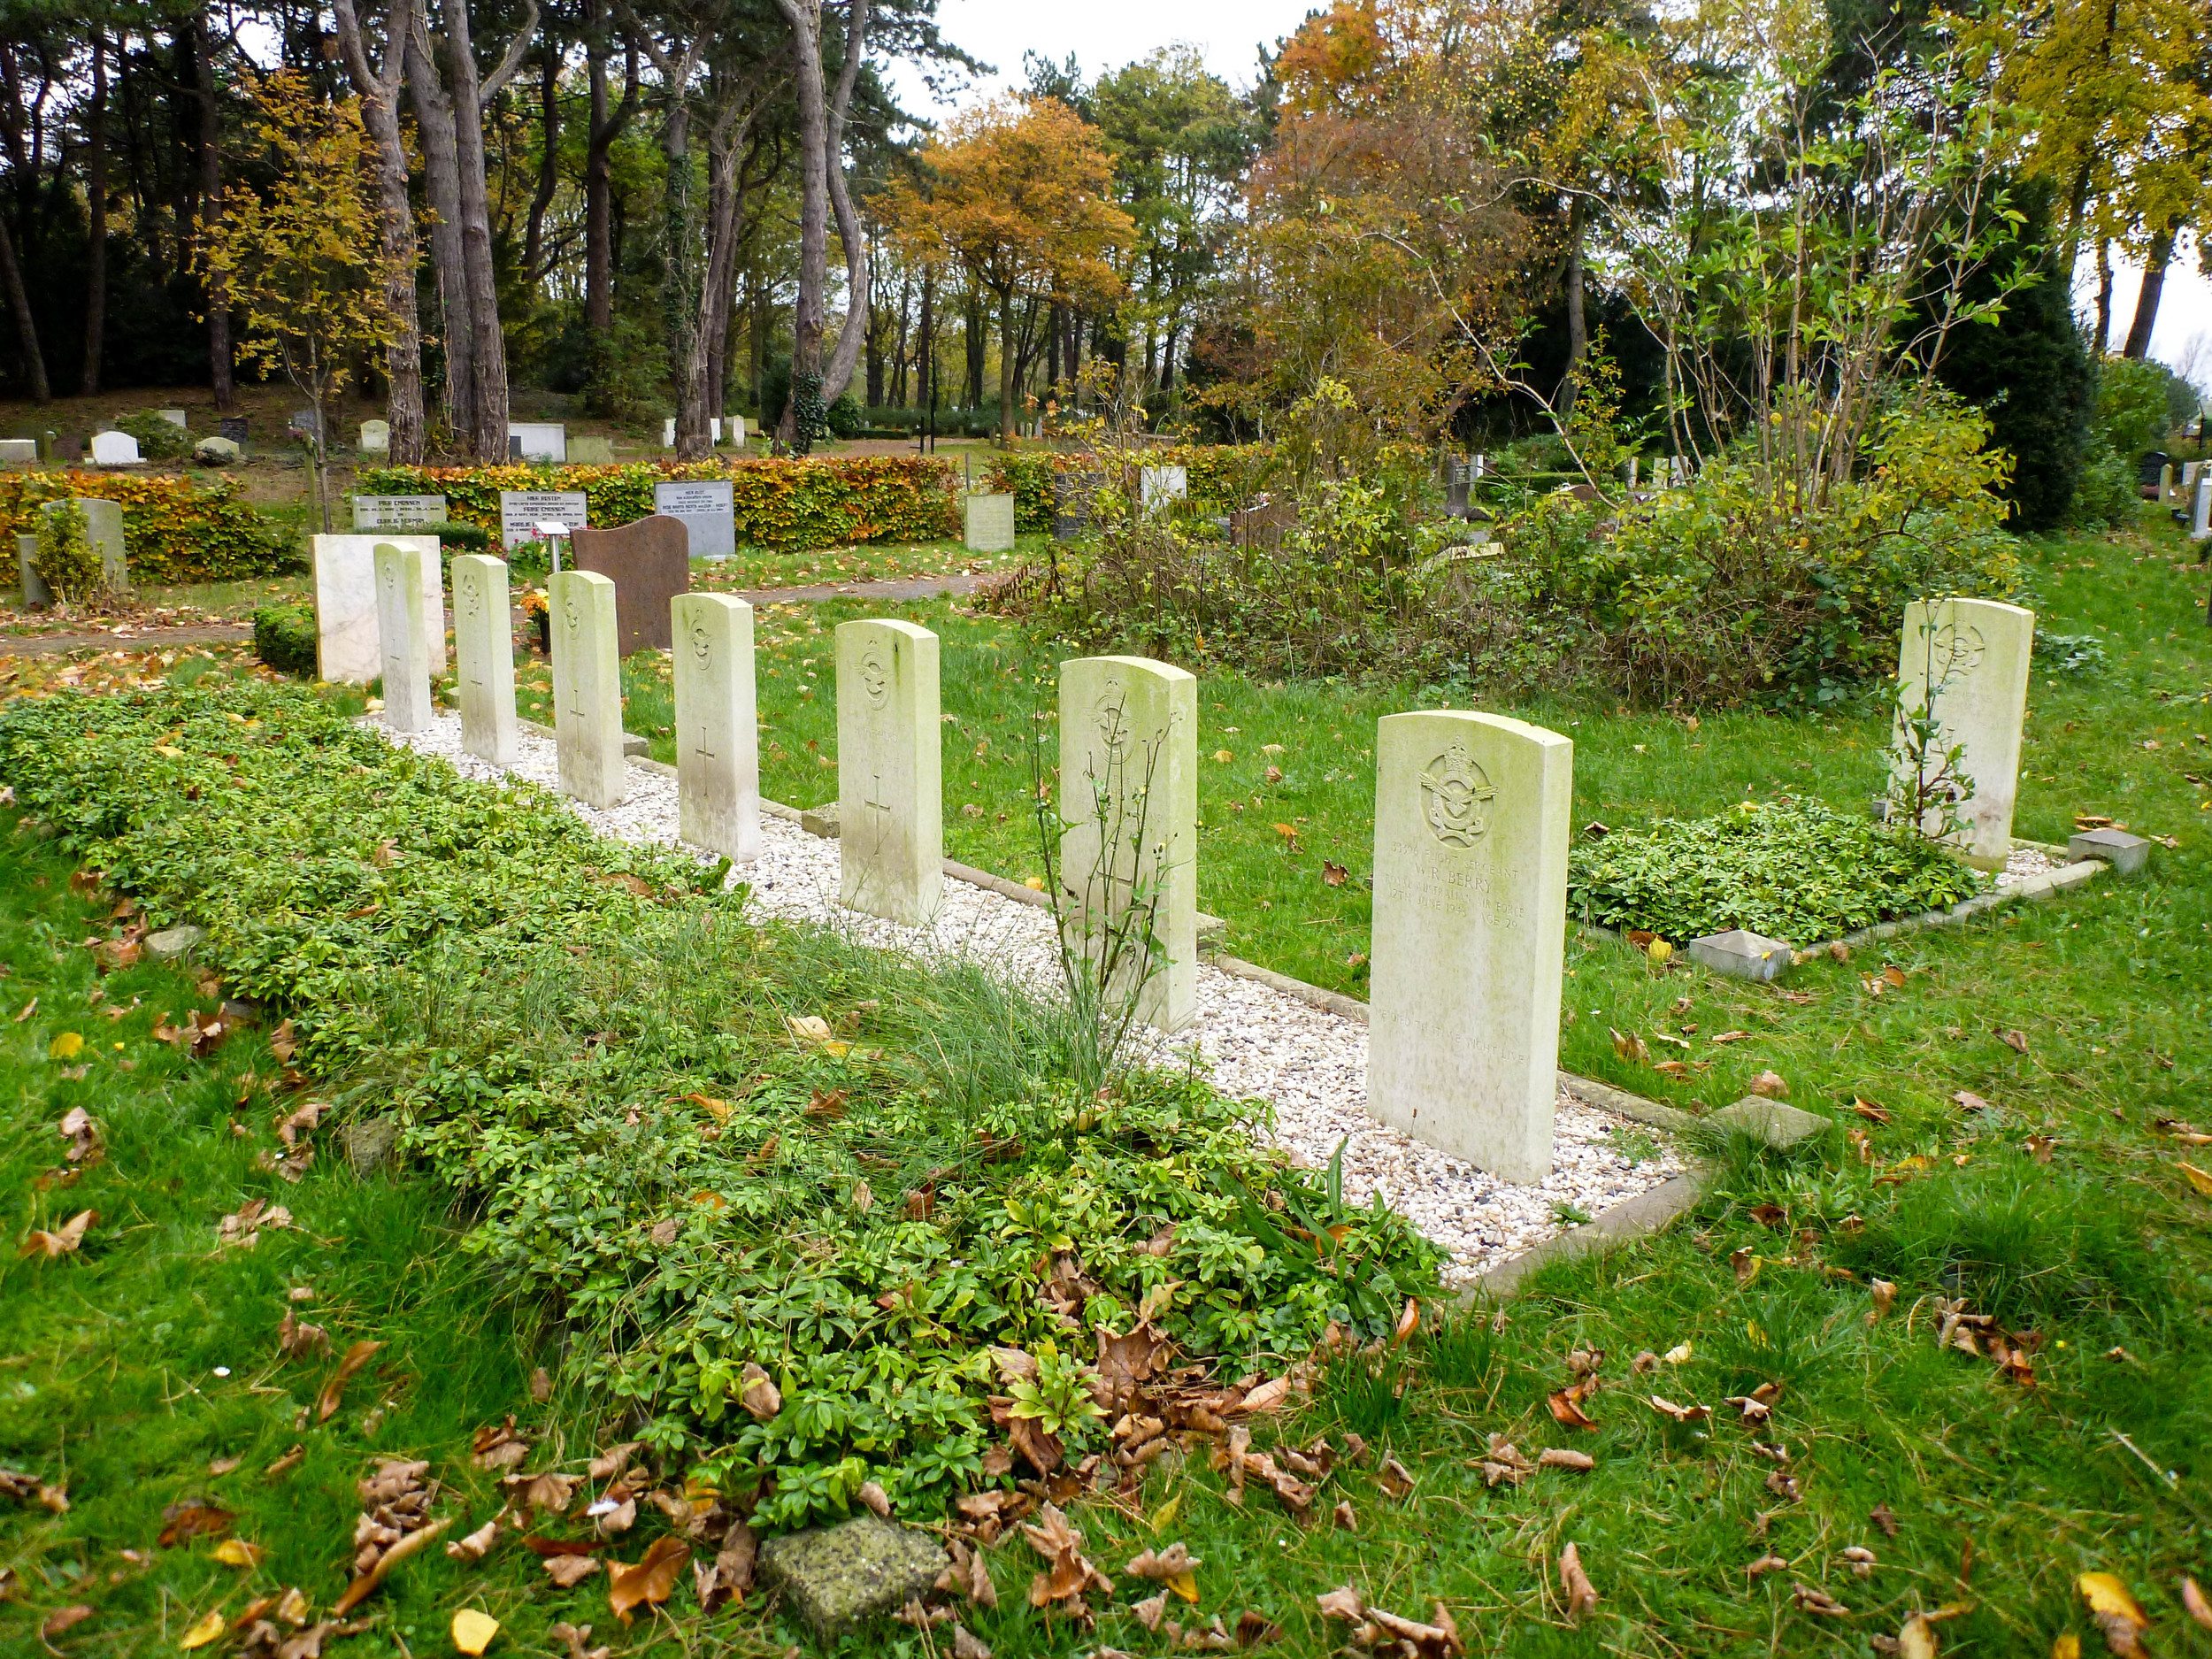 The seven graves in front are Keith and crew. Behind to the right is Howard. The rest of Howard's crew is buried elsewhere in The Netherlands.